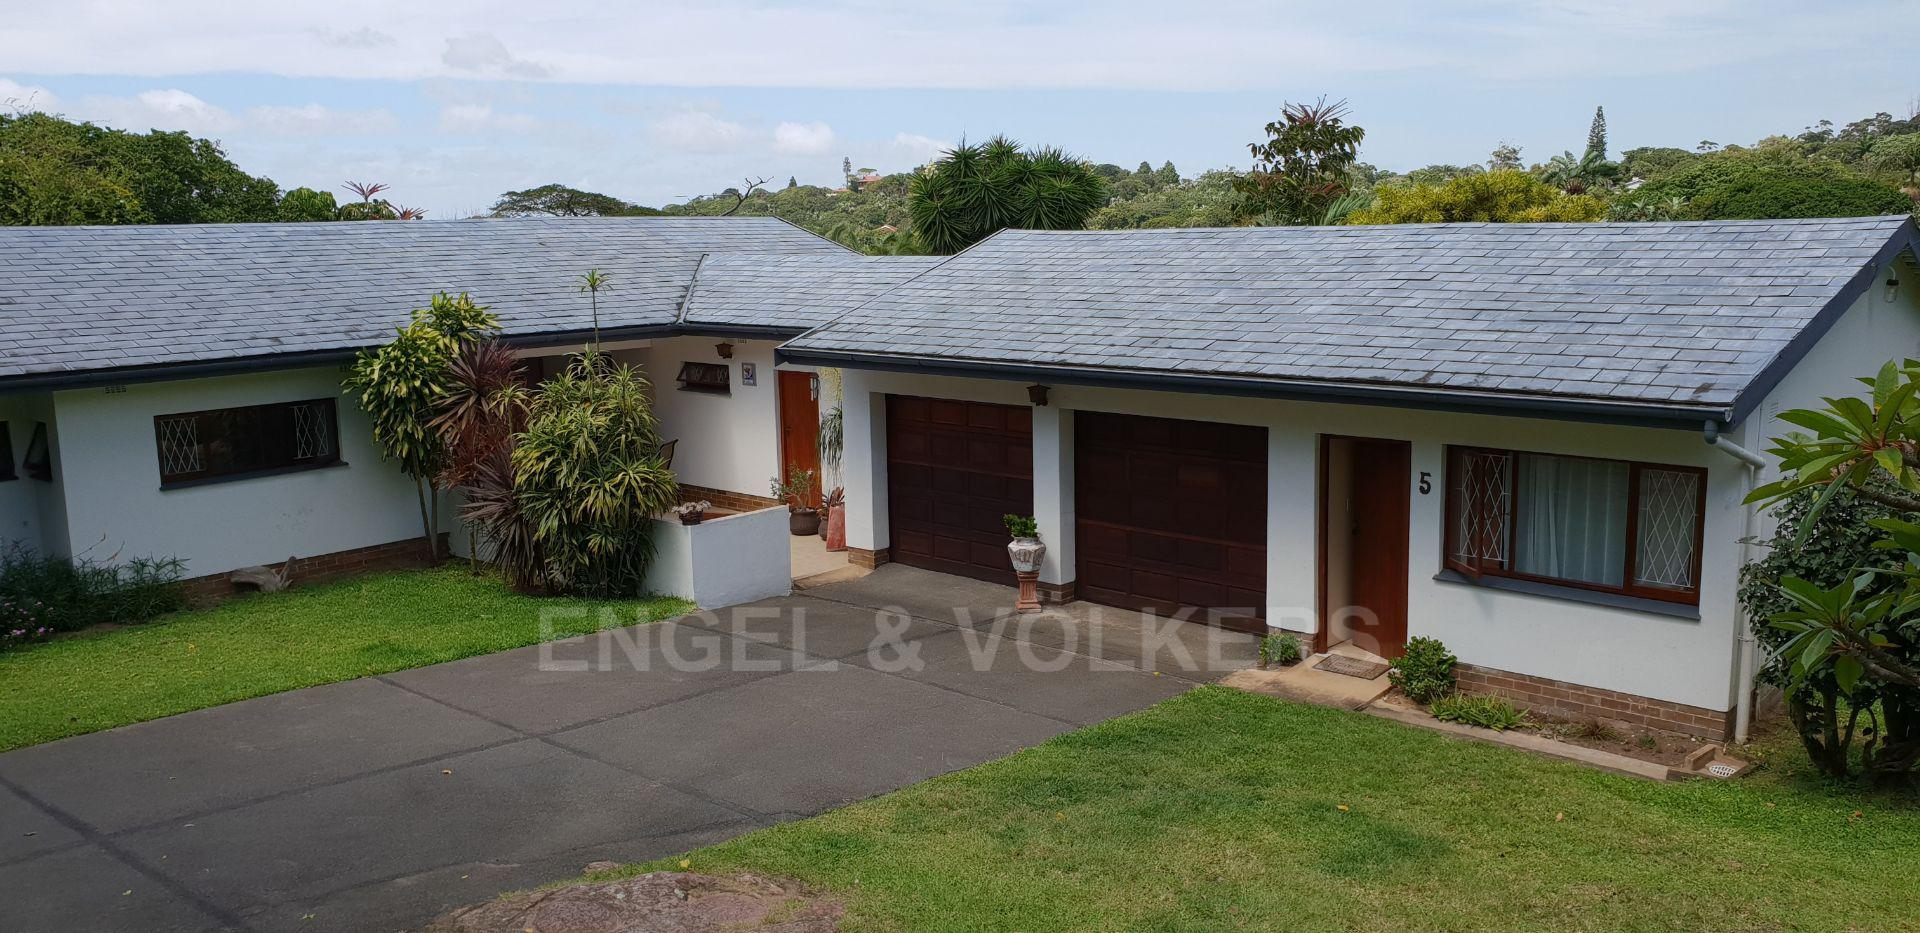 Southbroom, Southbroom Property  | Houses For Sale Southbroom, SOUTHBROOM, House 3 bedrooms property for sale Price:8,000,000